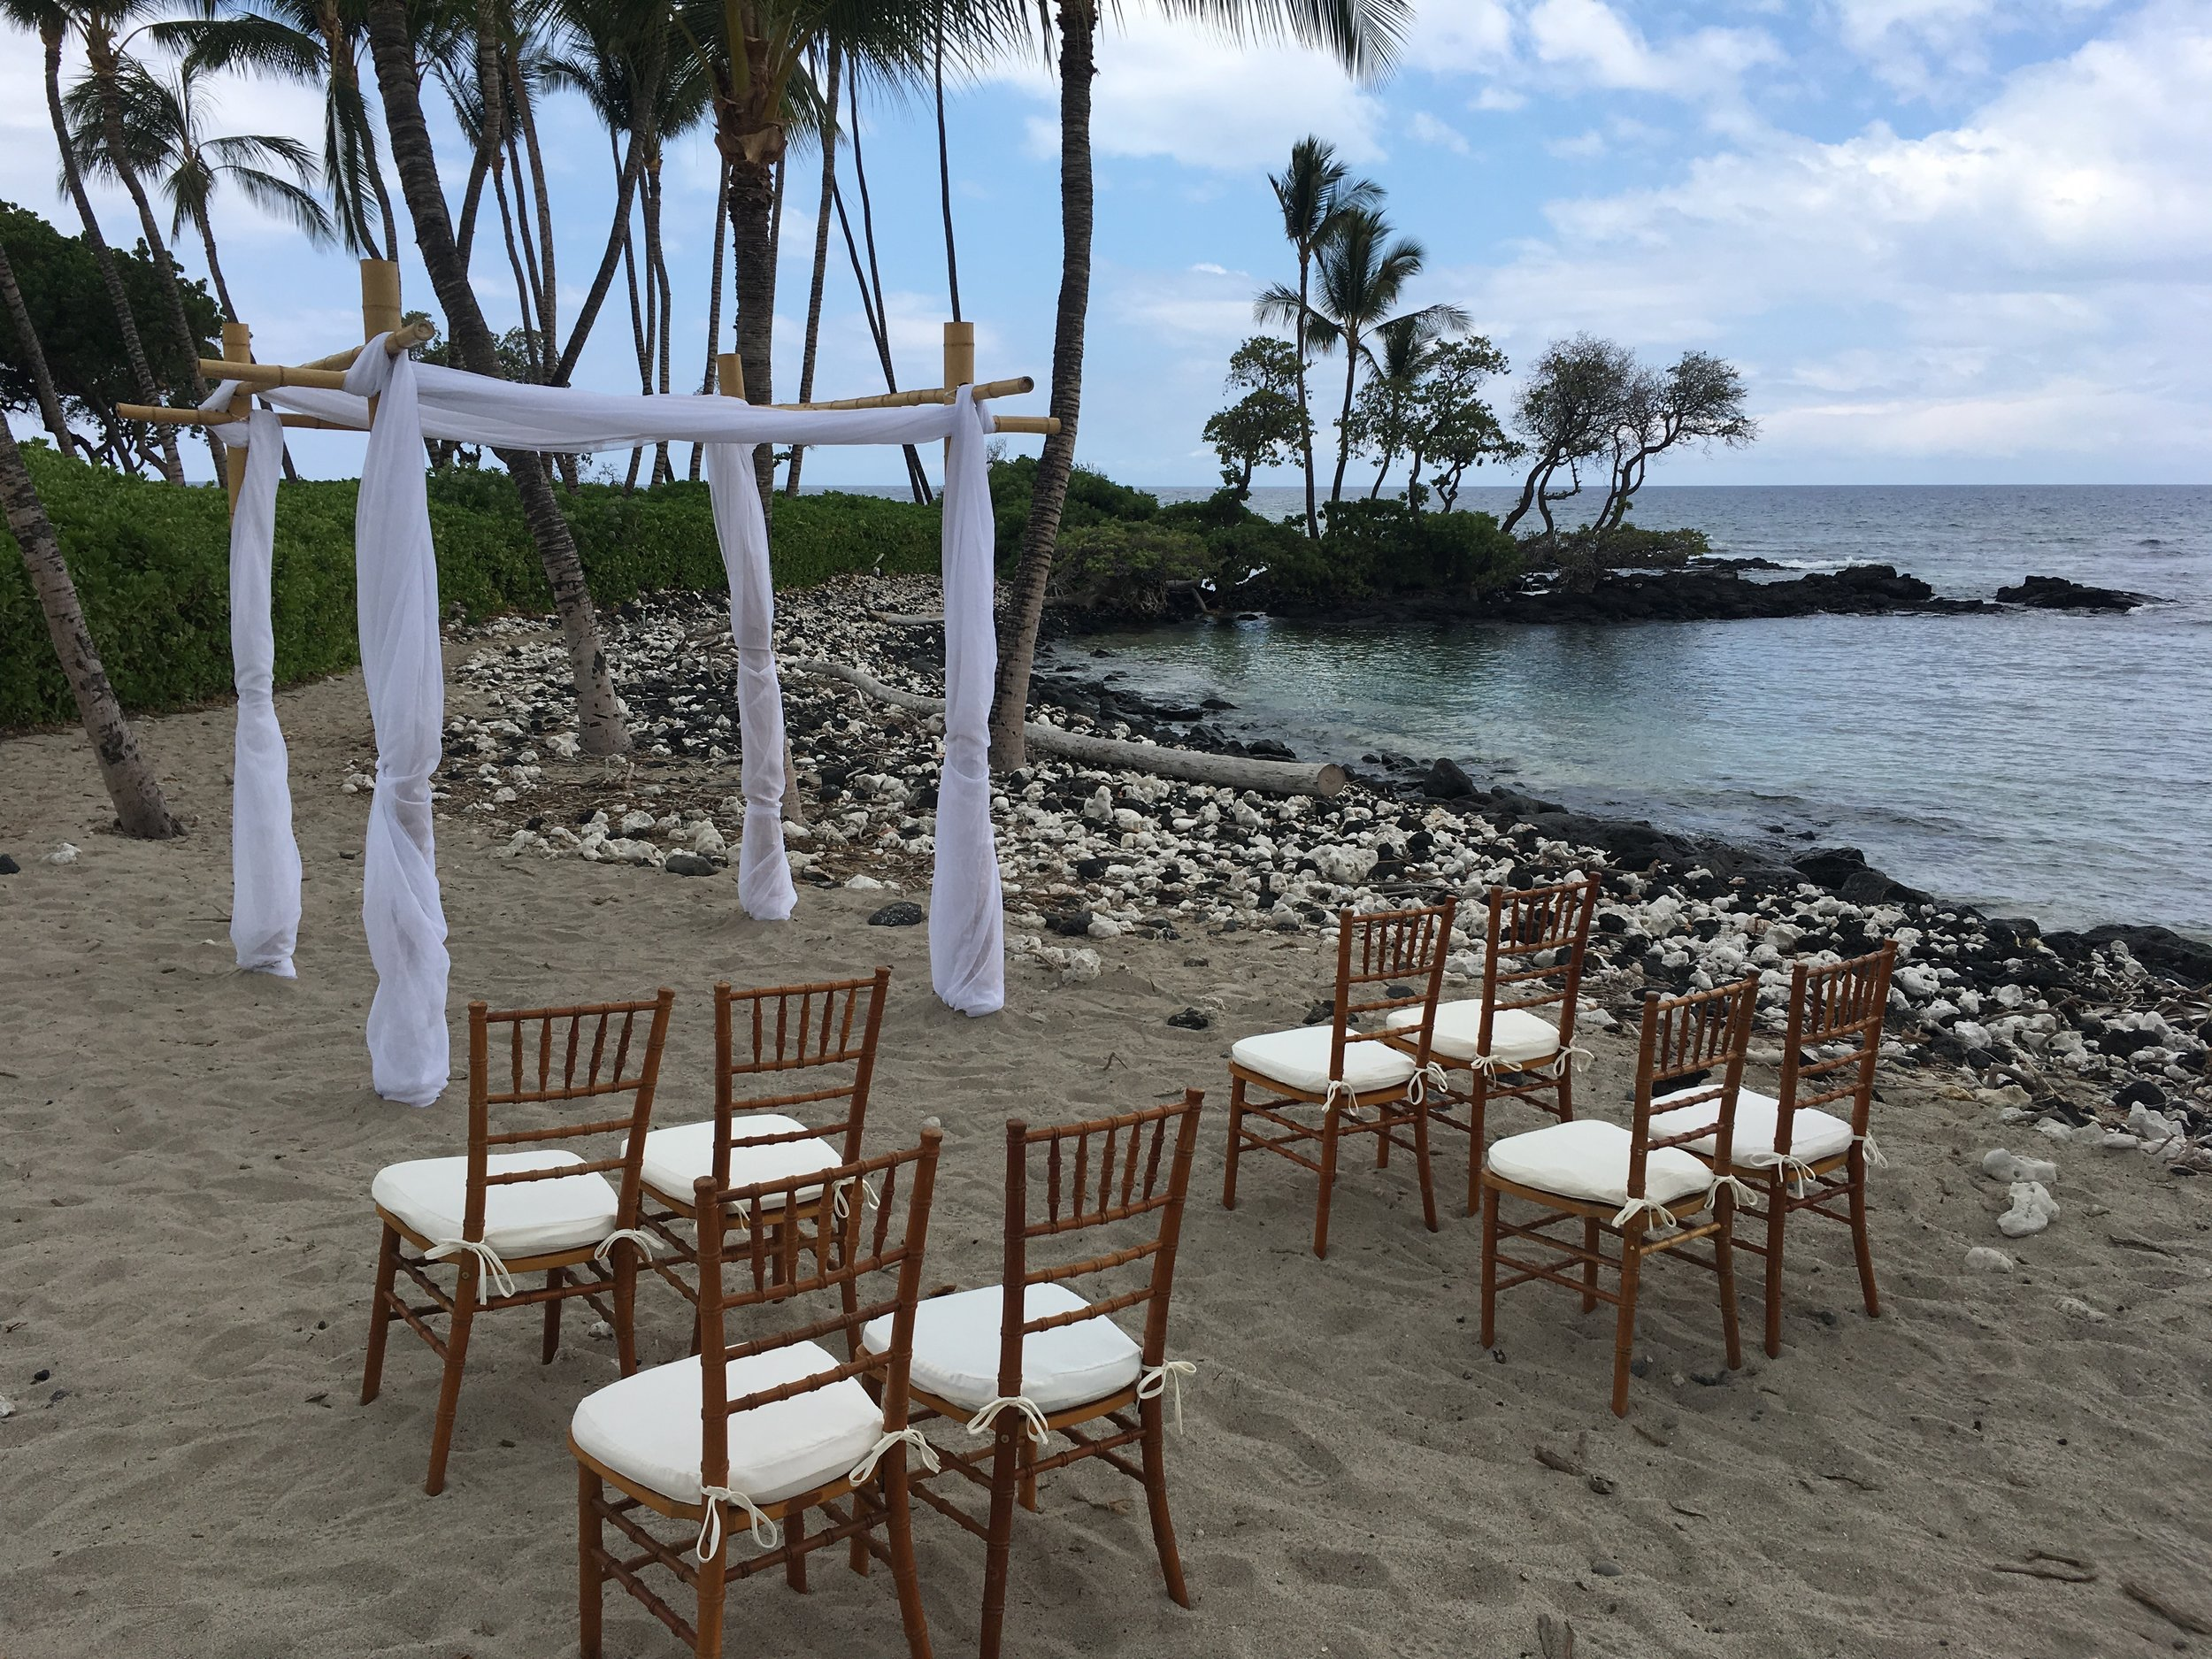 Natural Chiavari Chiars with a simple Fabric Draping over a Bamboo Wedding Structure on the beach.